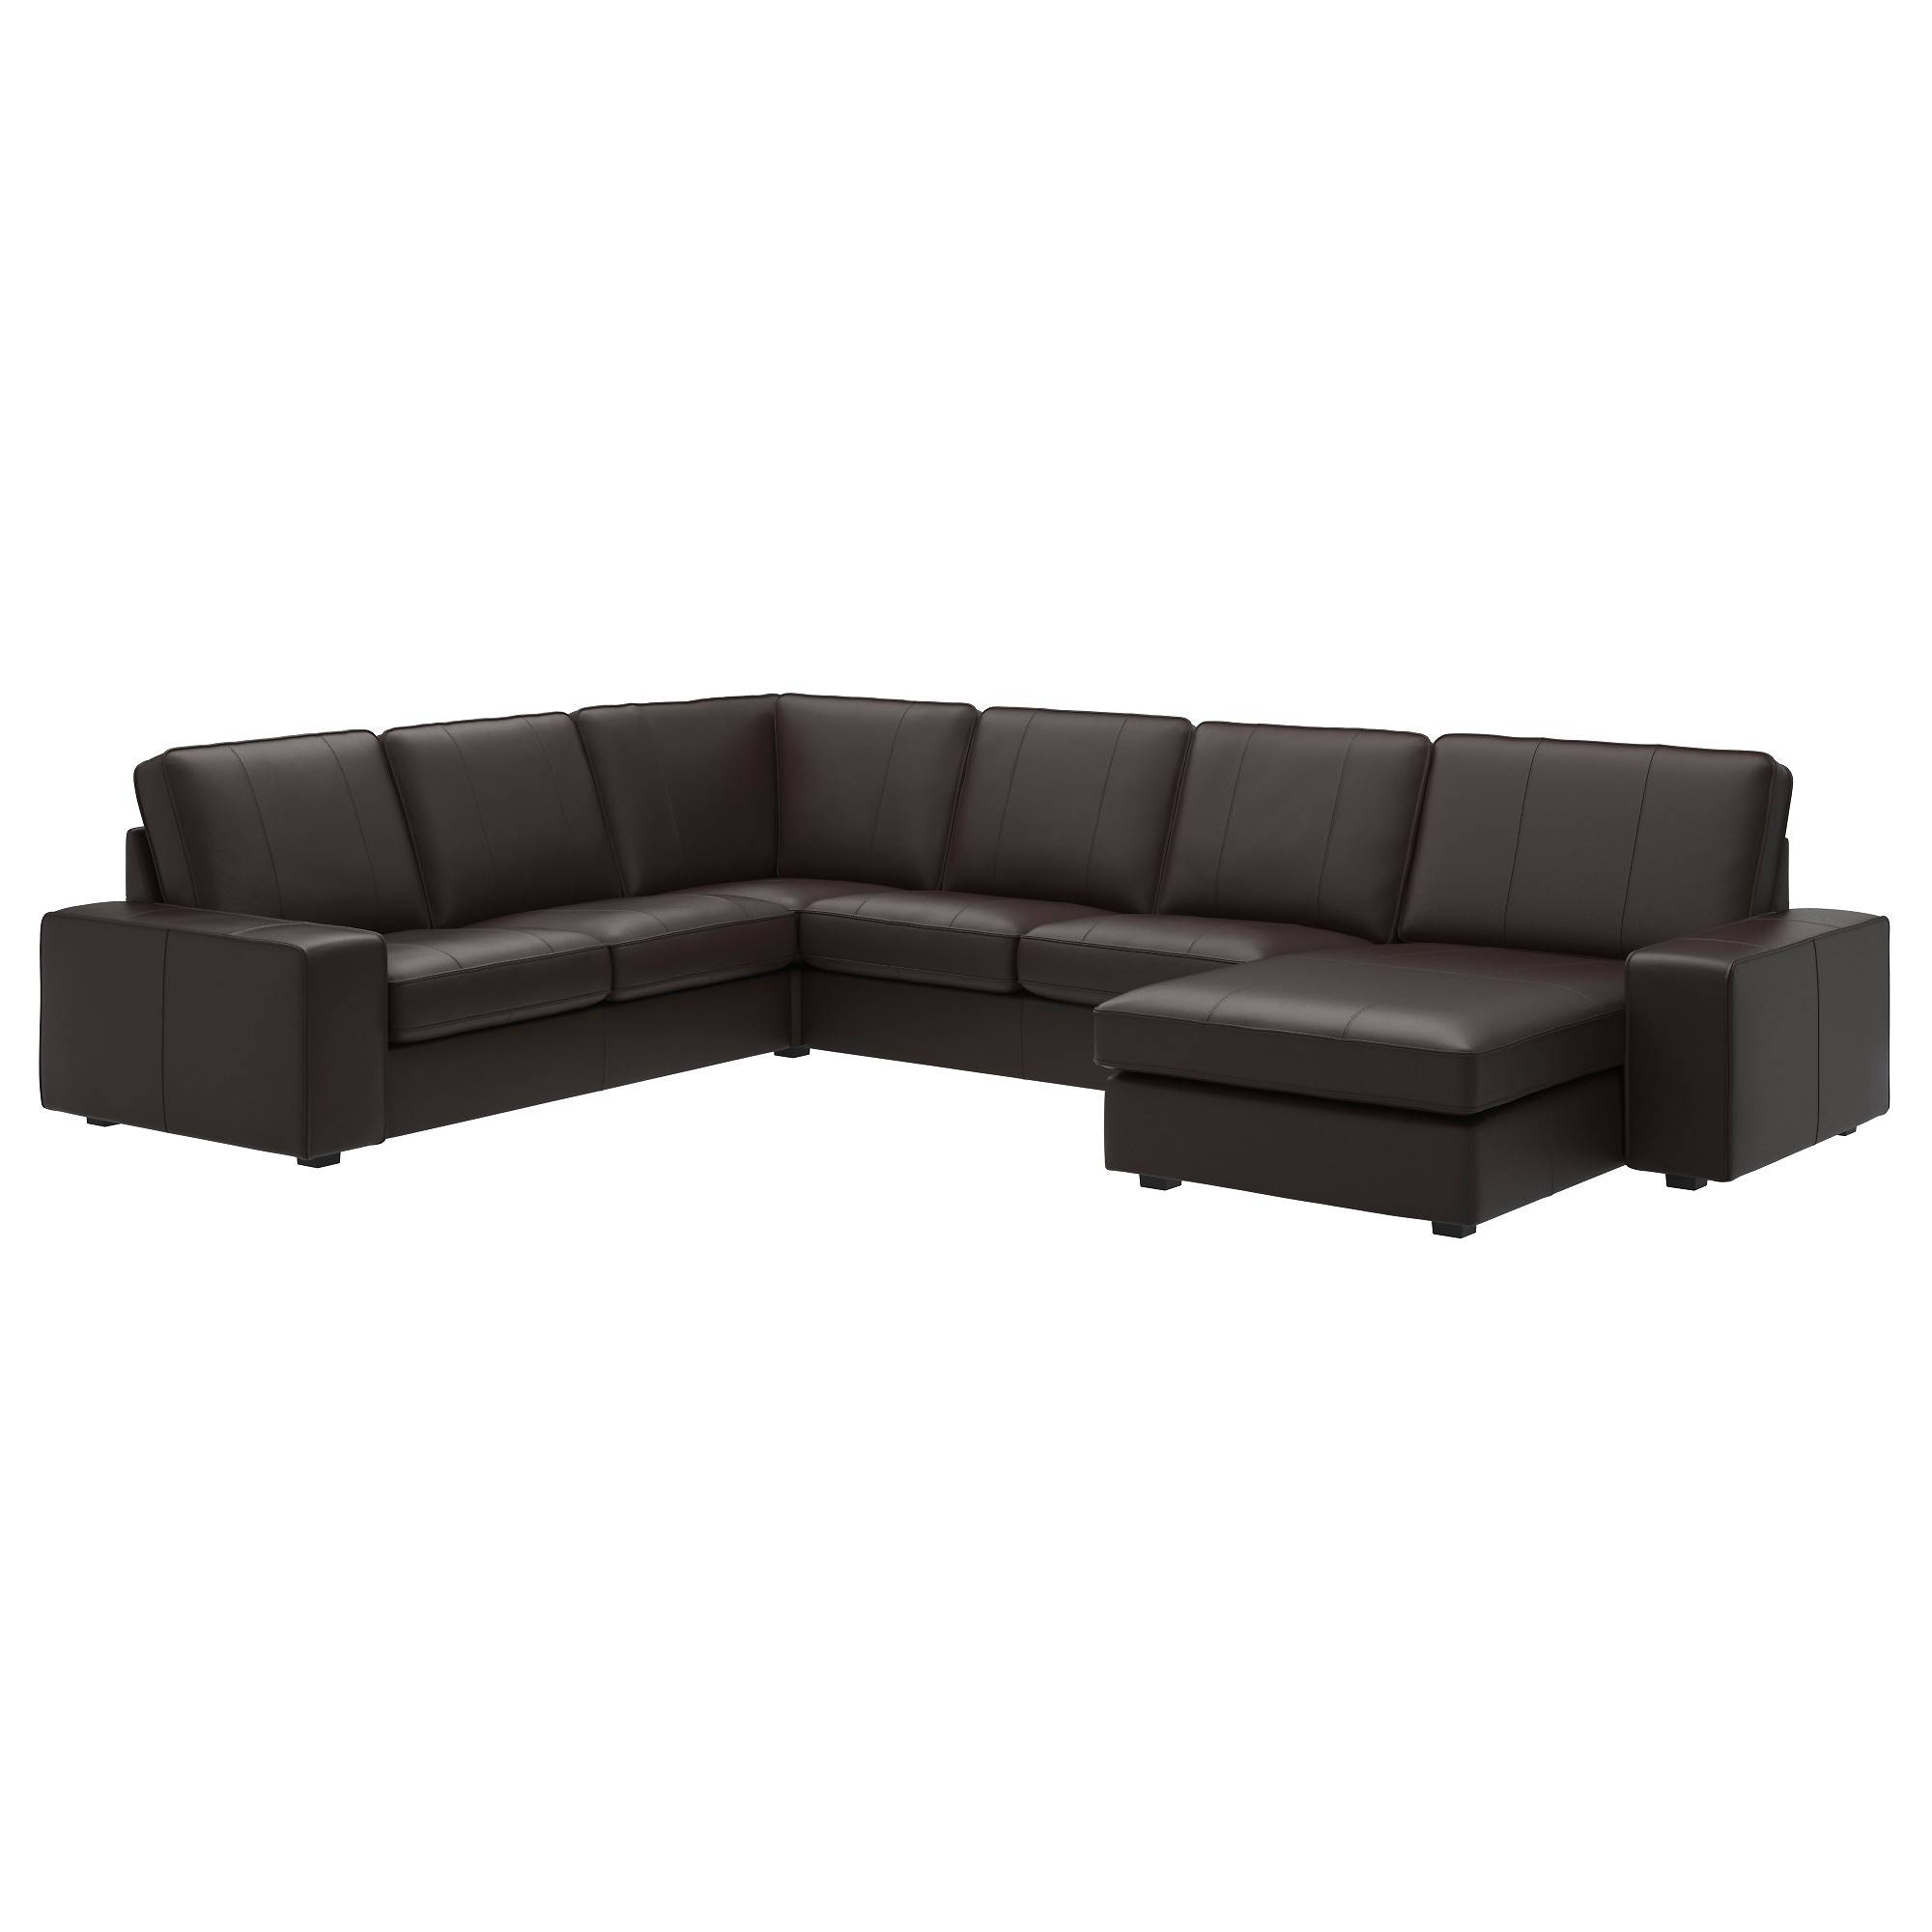 Sectional Sofas & Couches – Ikea Pertaining To Backless Chaise Sofa (View 21 of 30)